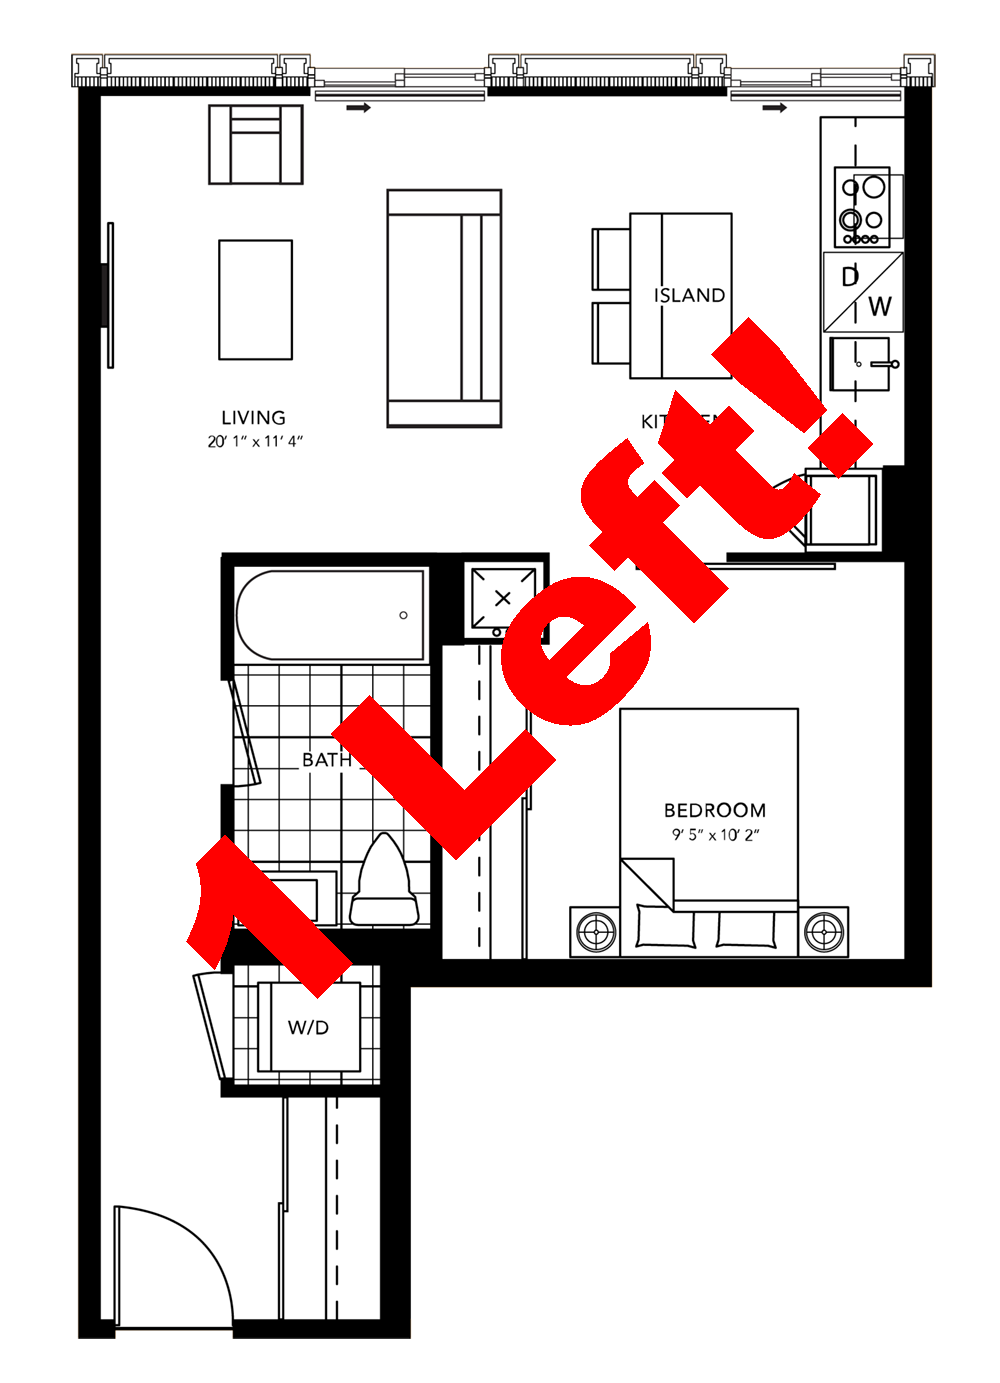 One Bedroom Layout - 1 Left.png